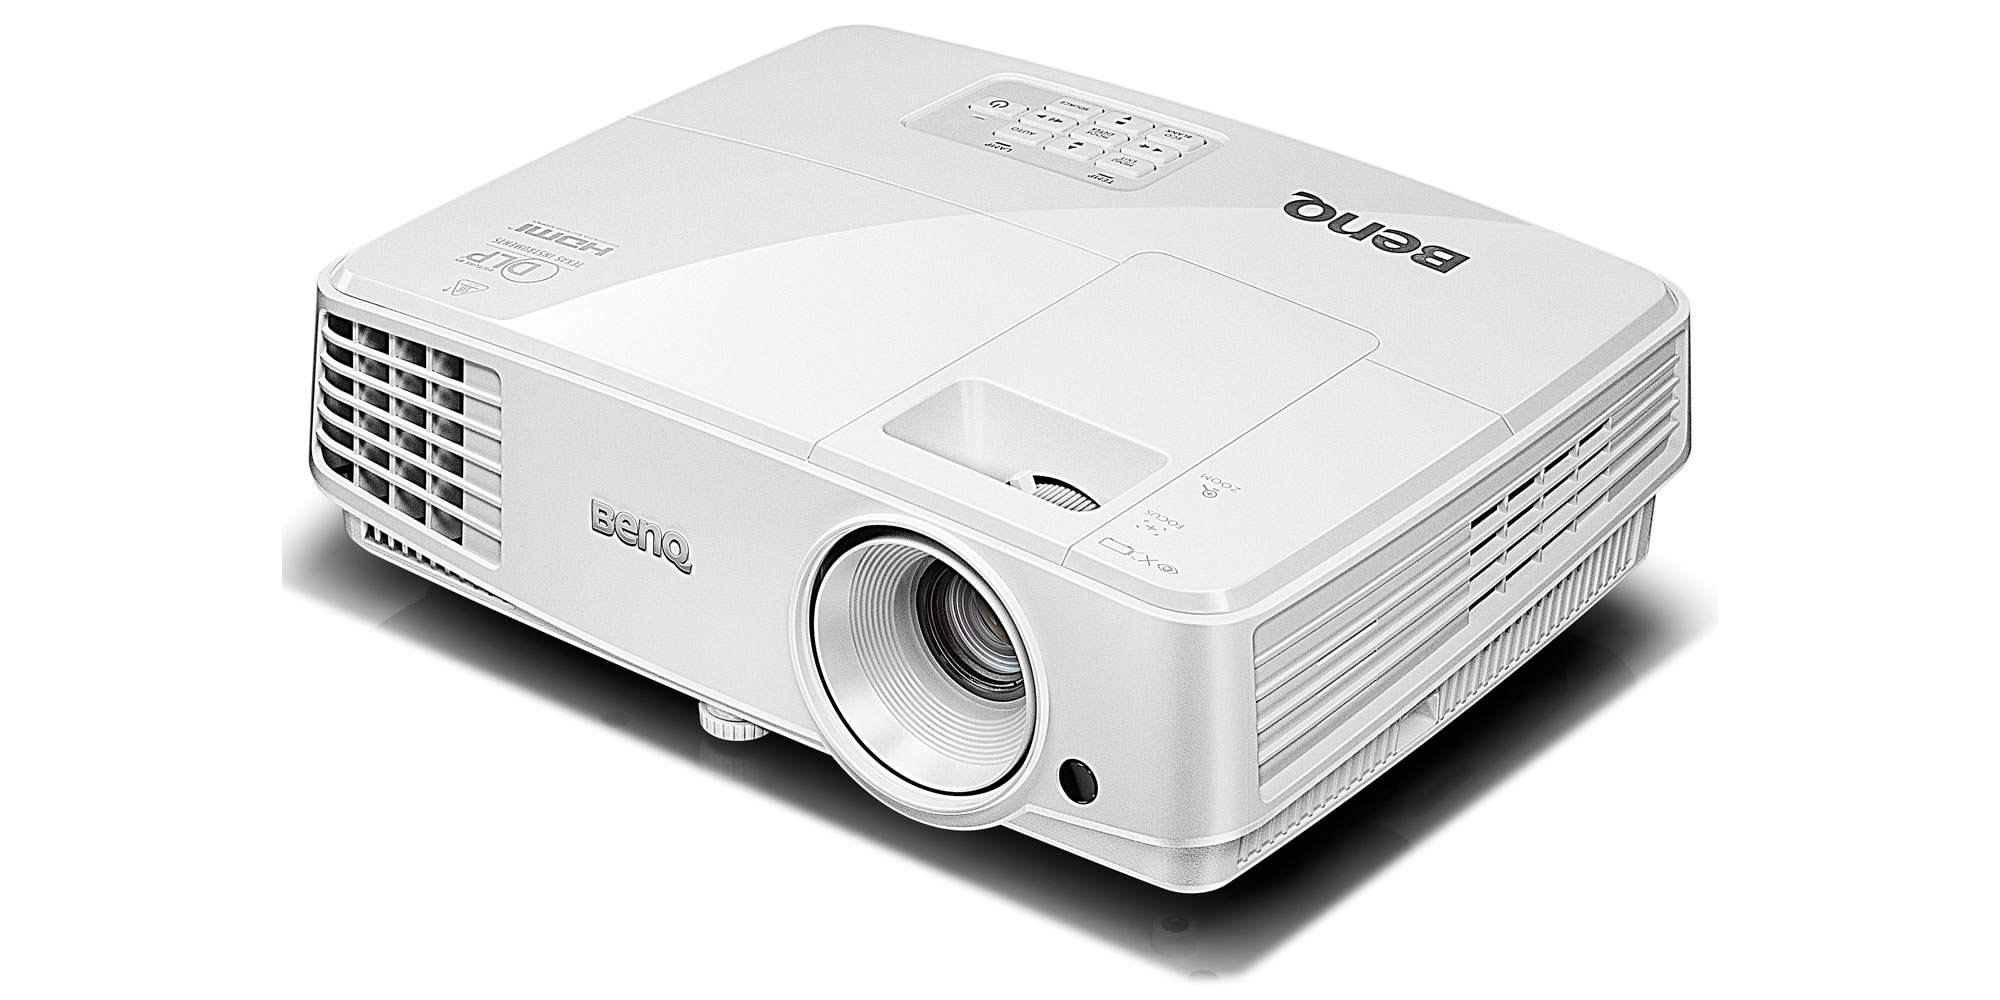 Benq Ms527 Epson Eb S300 Projector